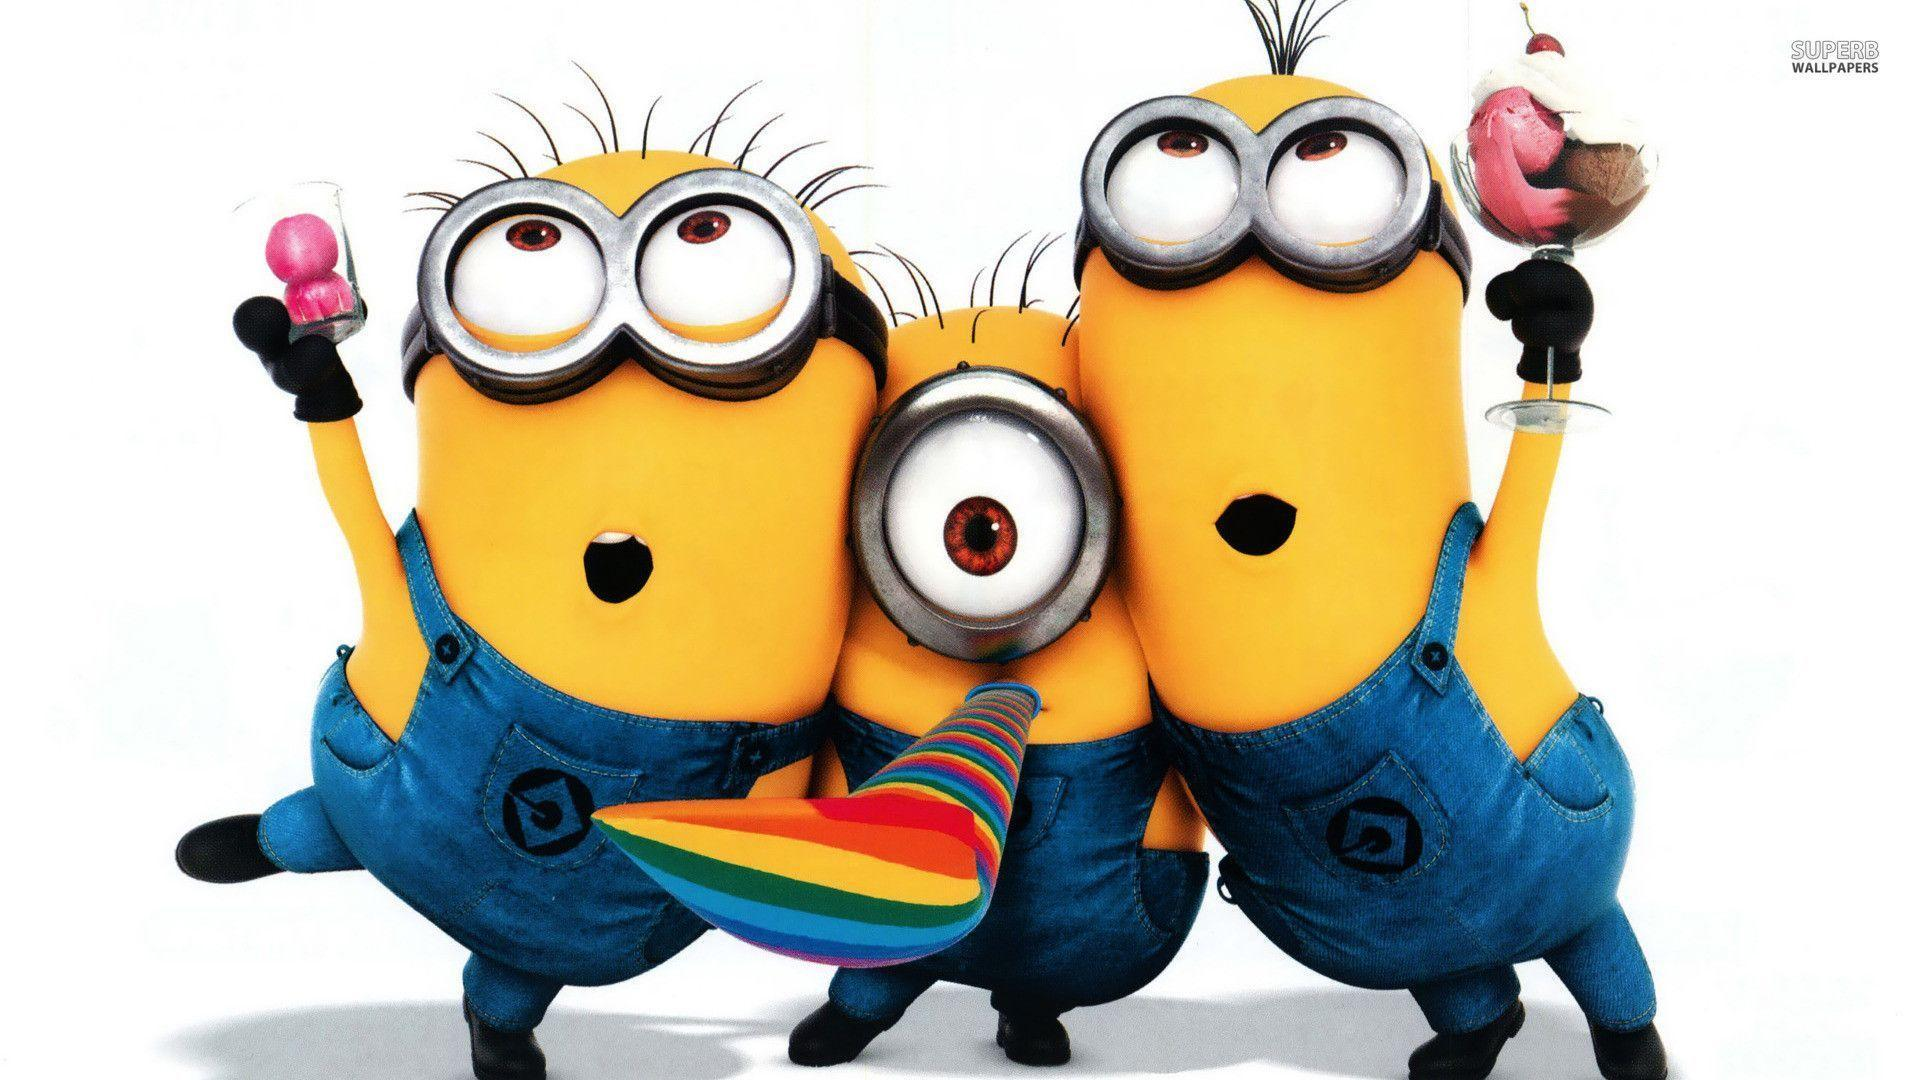 despicable me minions wallpapers - photo #9